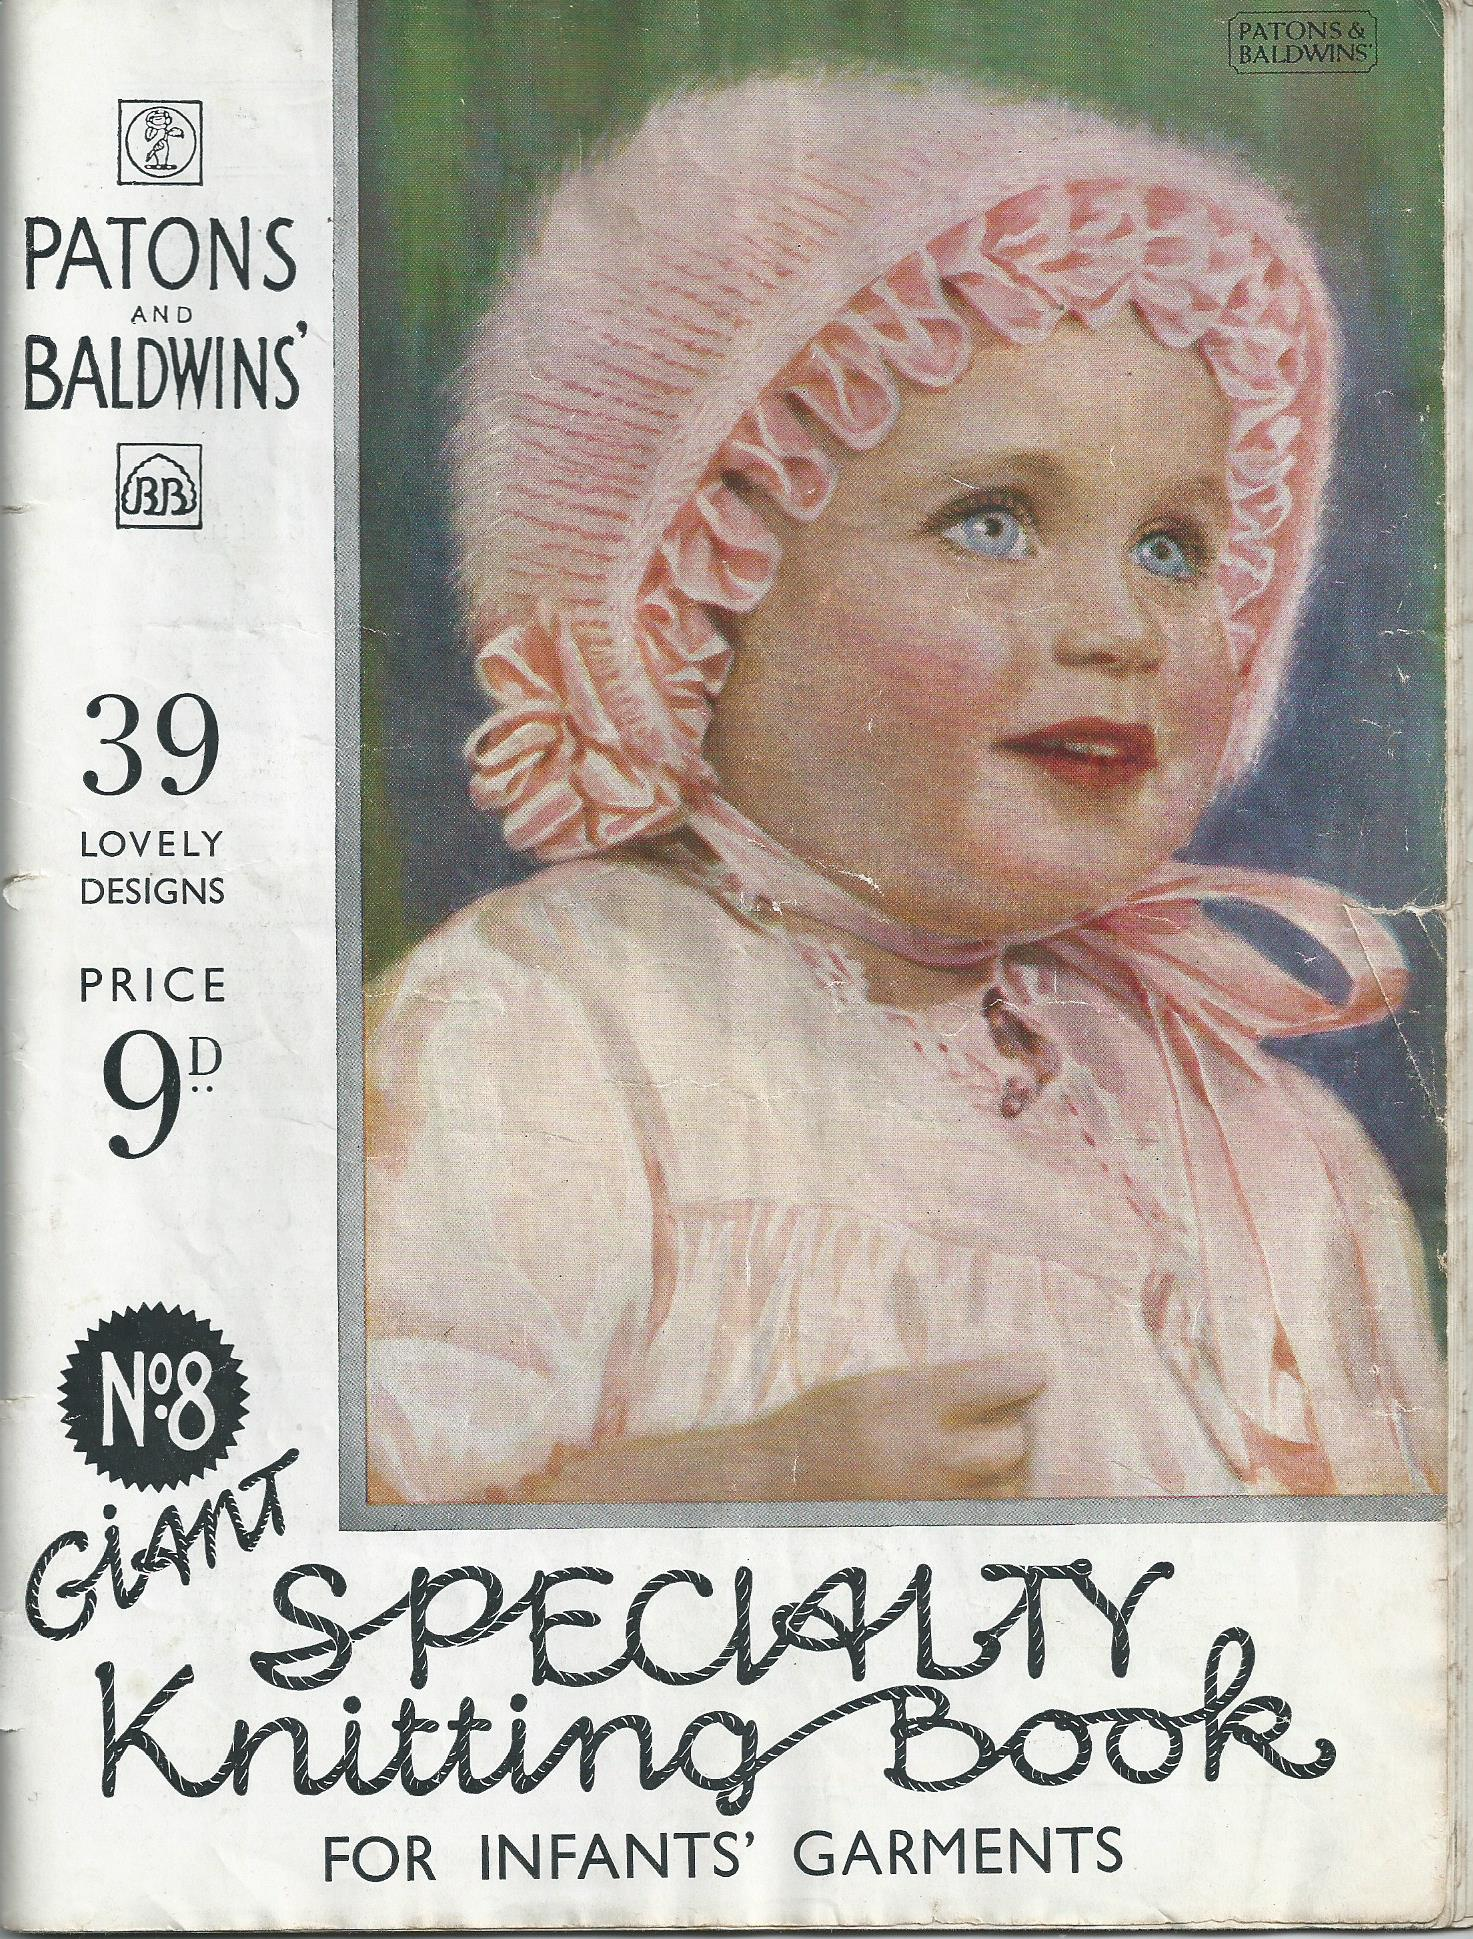 Patons Knitting Pattern Archive : Category:Patons Knitting and Crochet Pattern Archive Wiki Fandom powered ...